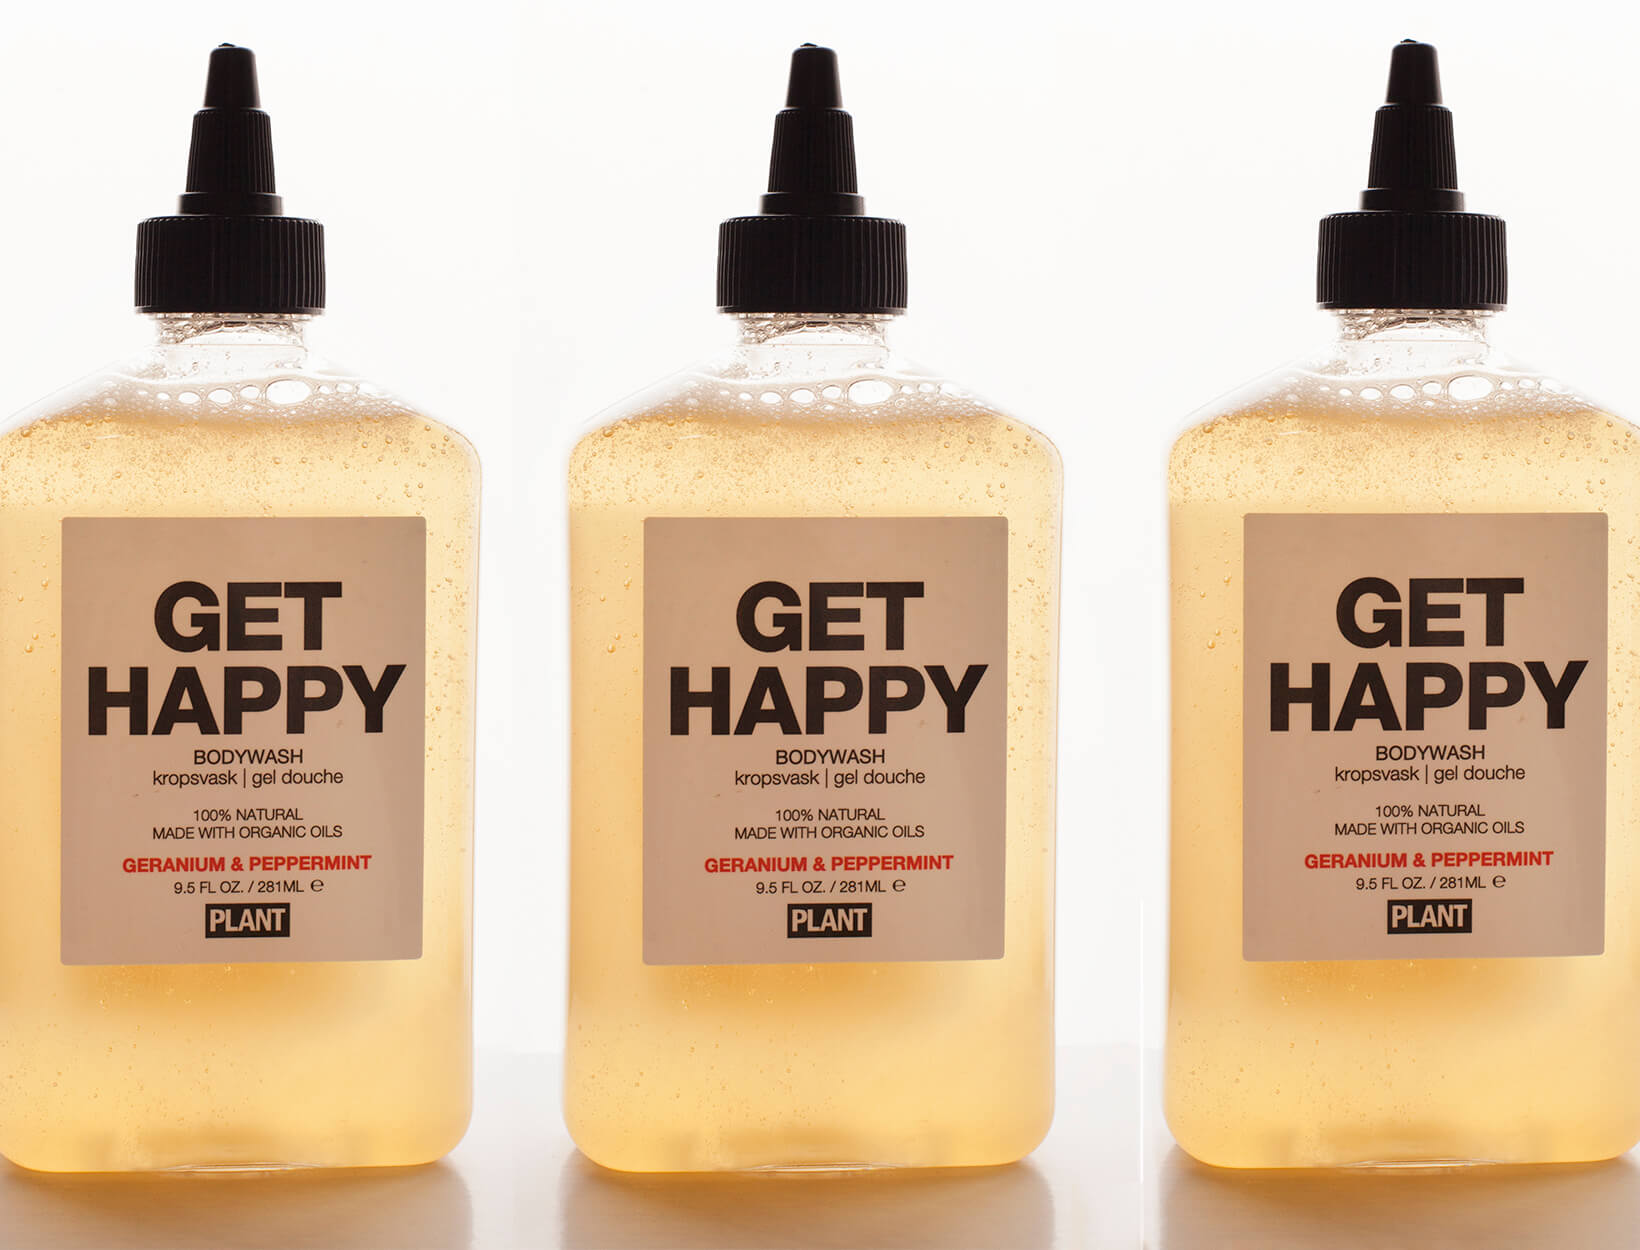 Godfrey's Guide: Why Not Get Happy?